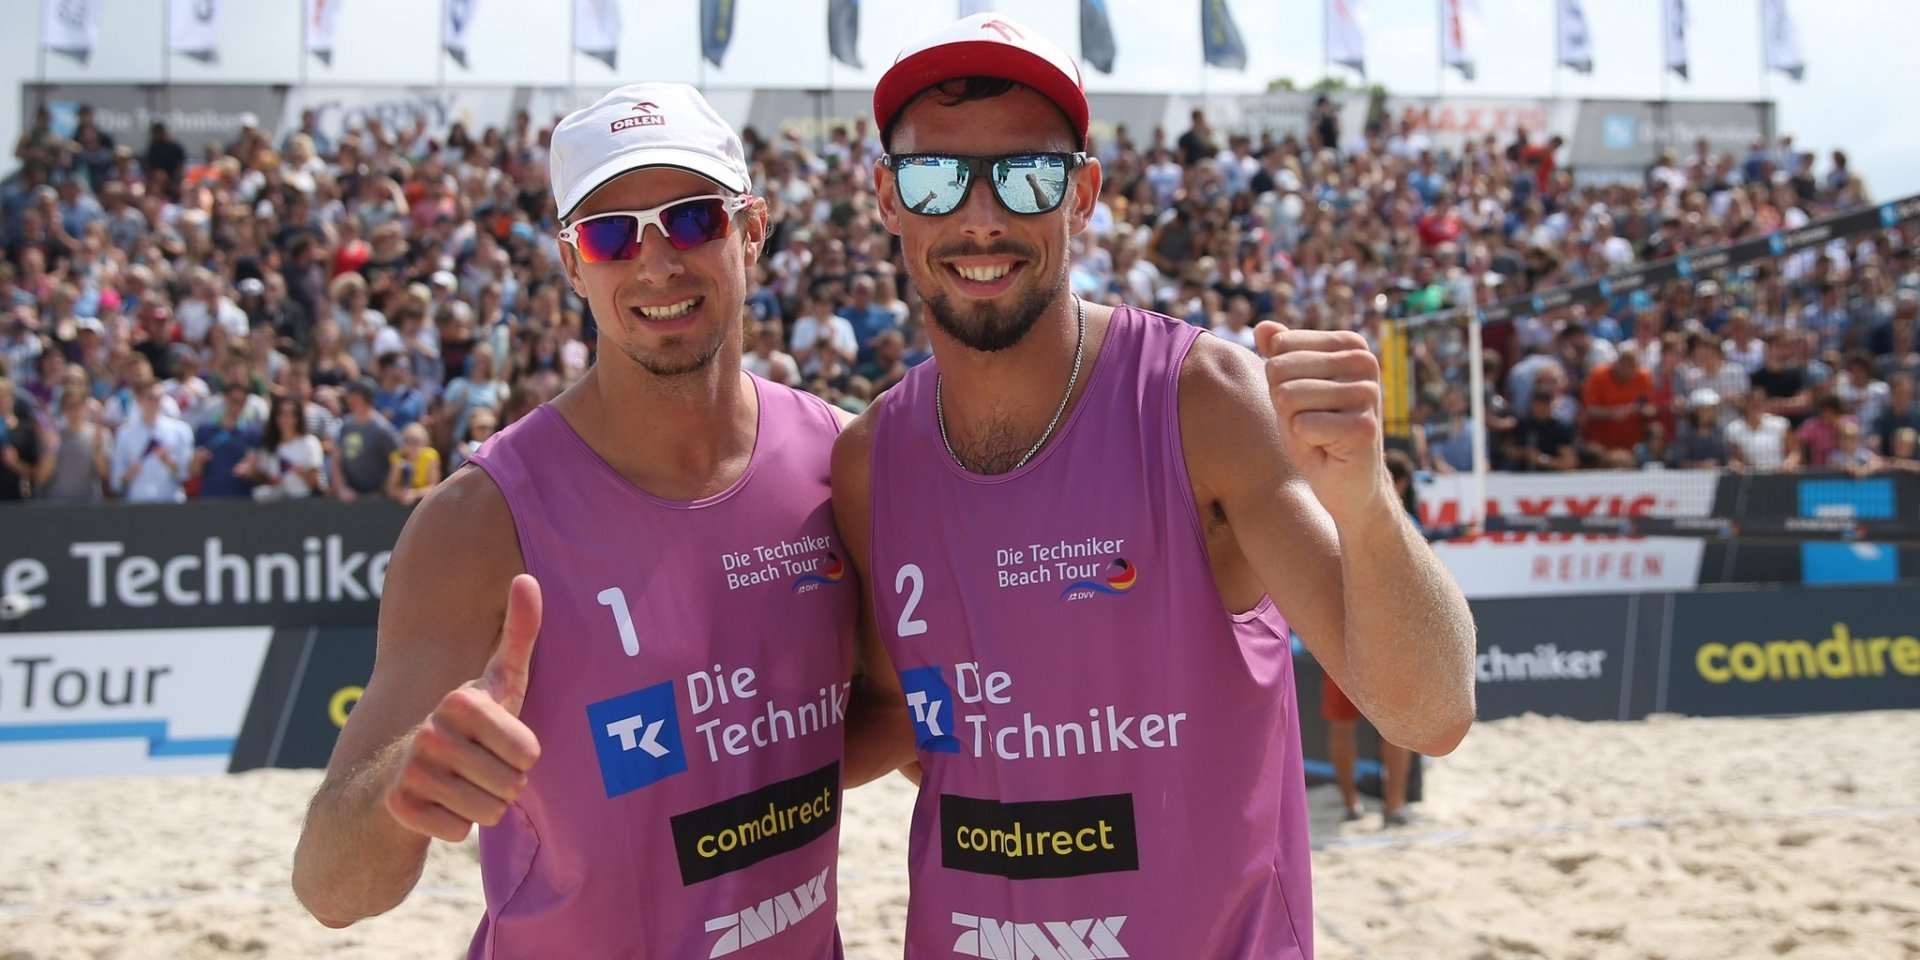 Polish Olympians Prudel and Losiak topped the podium in Münster (Photocredit: Die Teckniker Beach Tour)